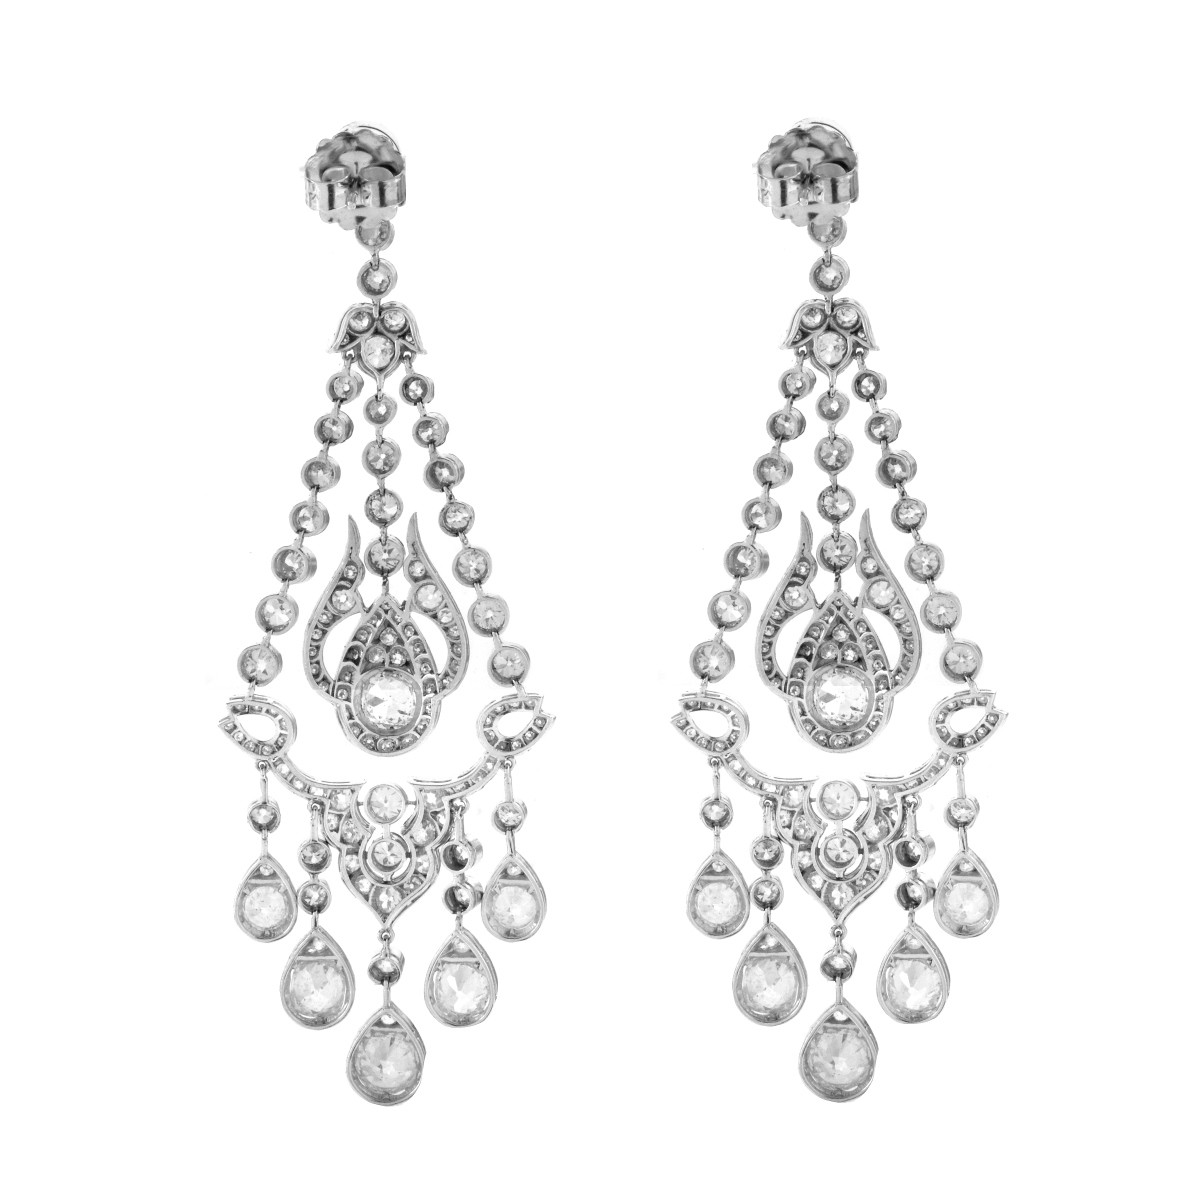 Diamond and Platinum Earrings